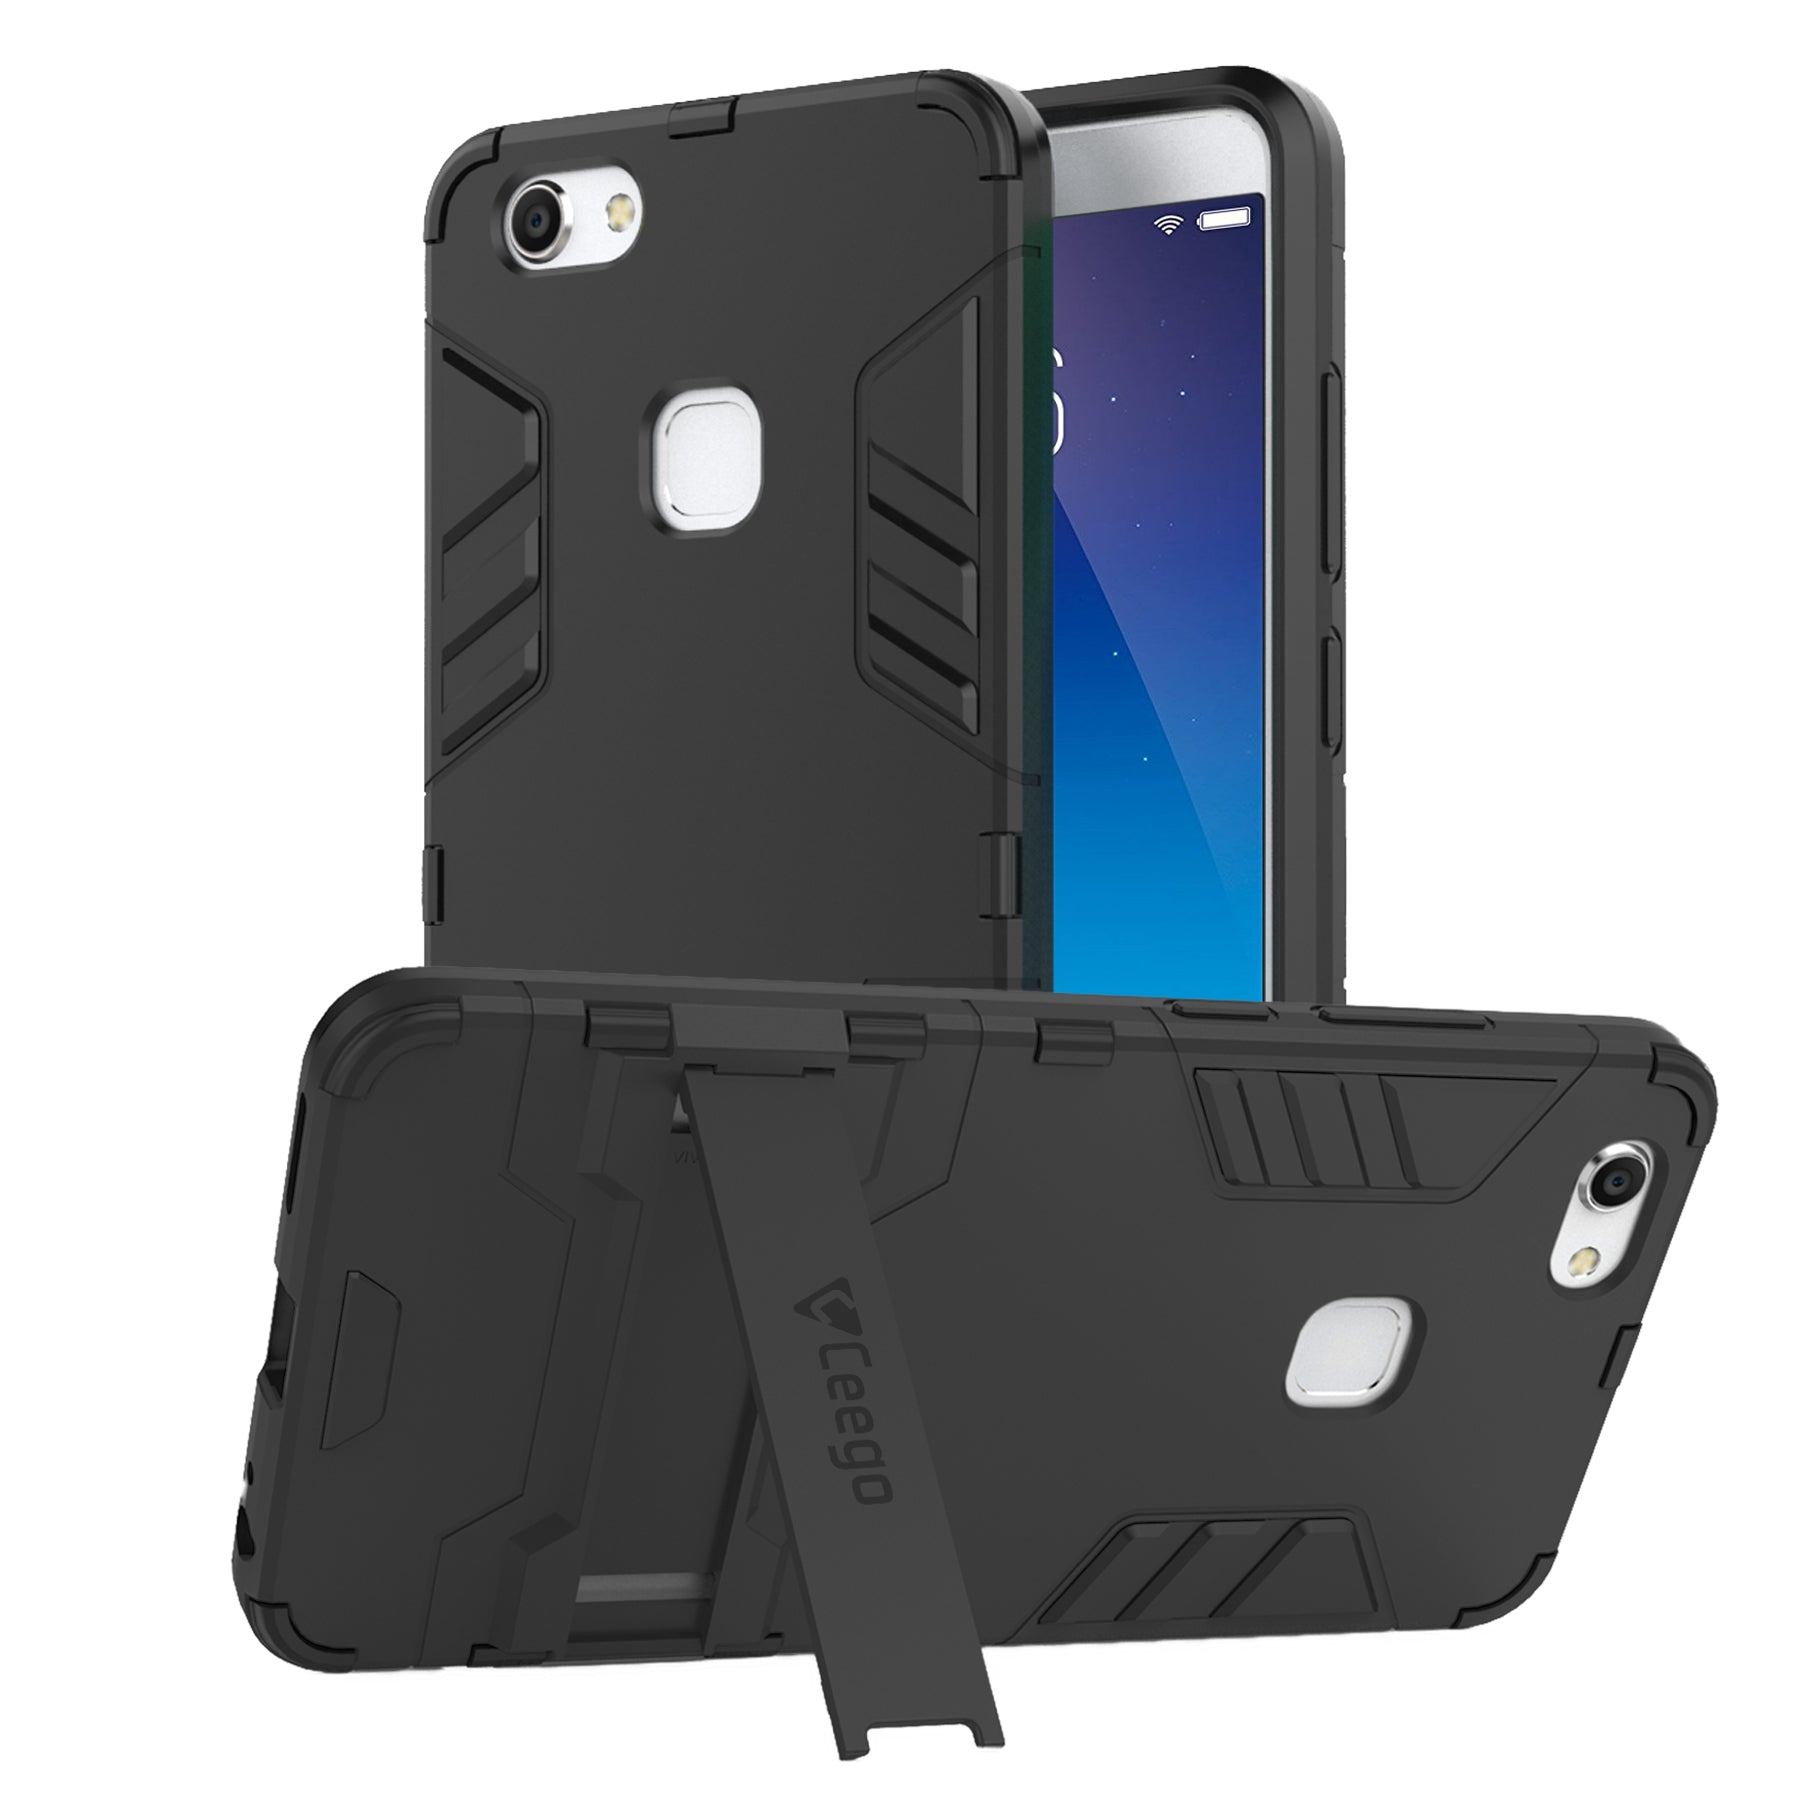 Ceego Stealth Defence Back Case for Vivo Z10  – Matte Black